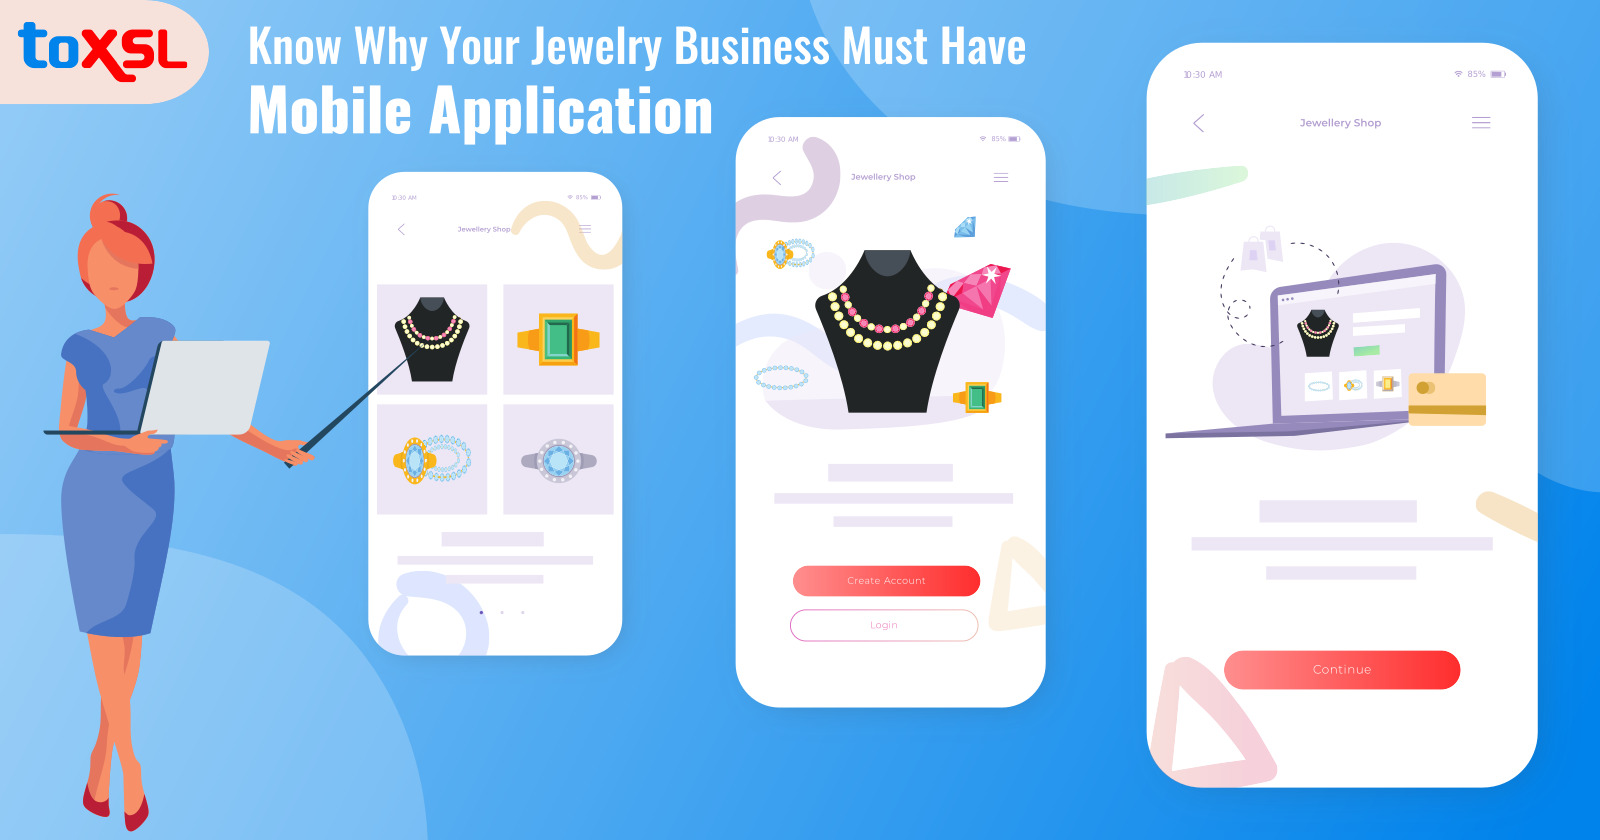 Know Why Your Jewelry Business Must Have Mobile Application